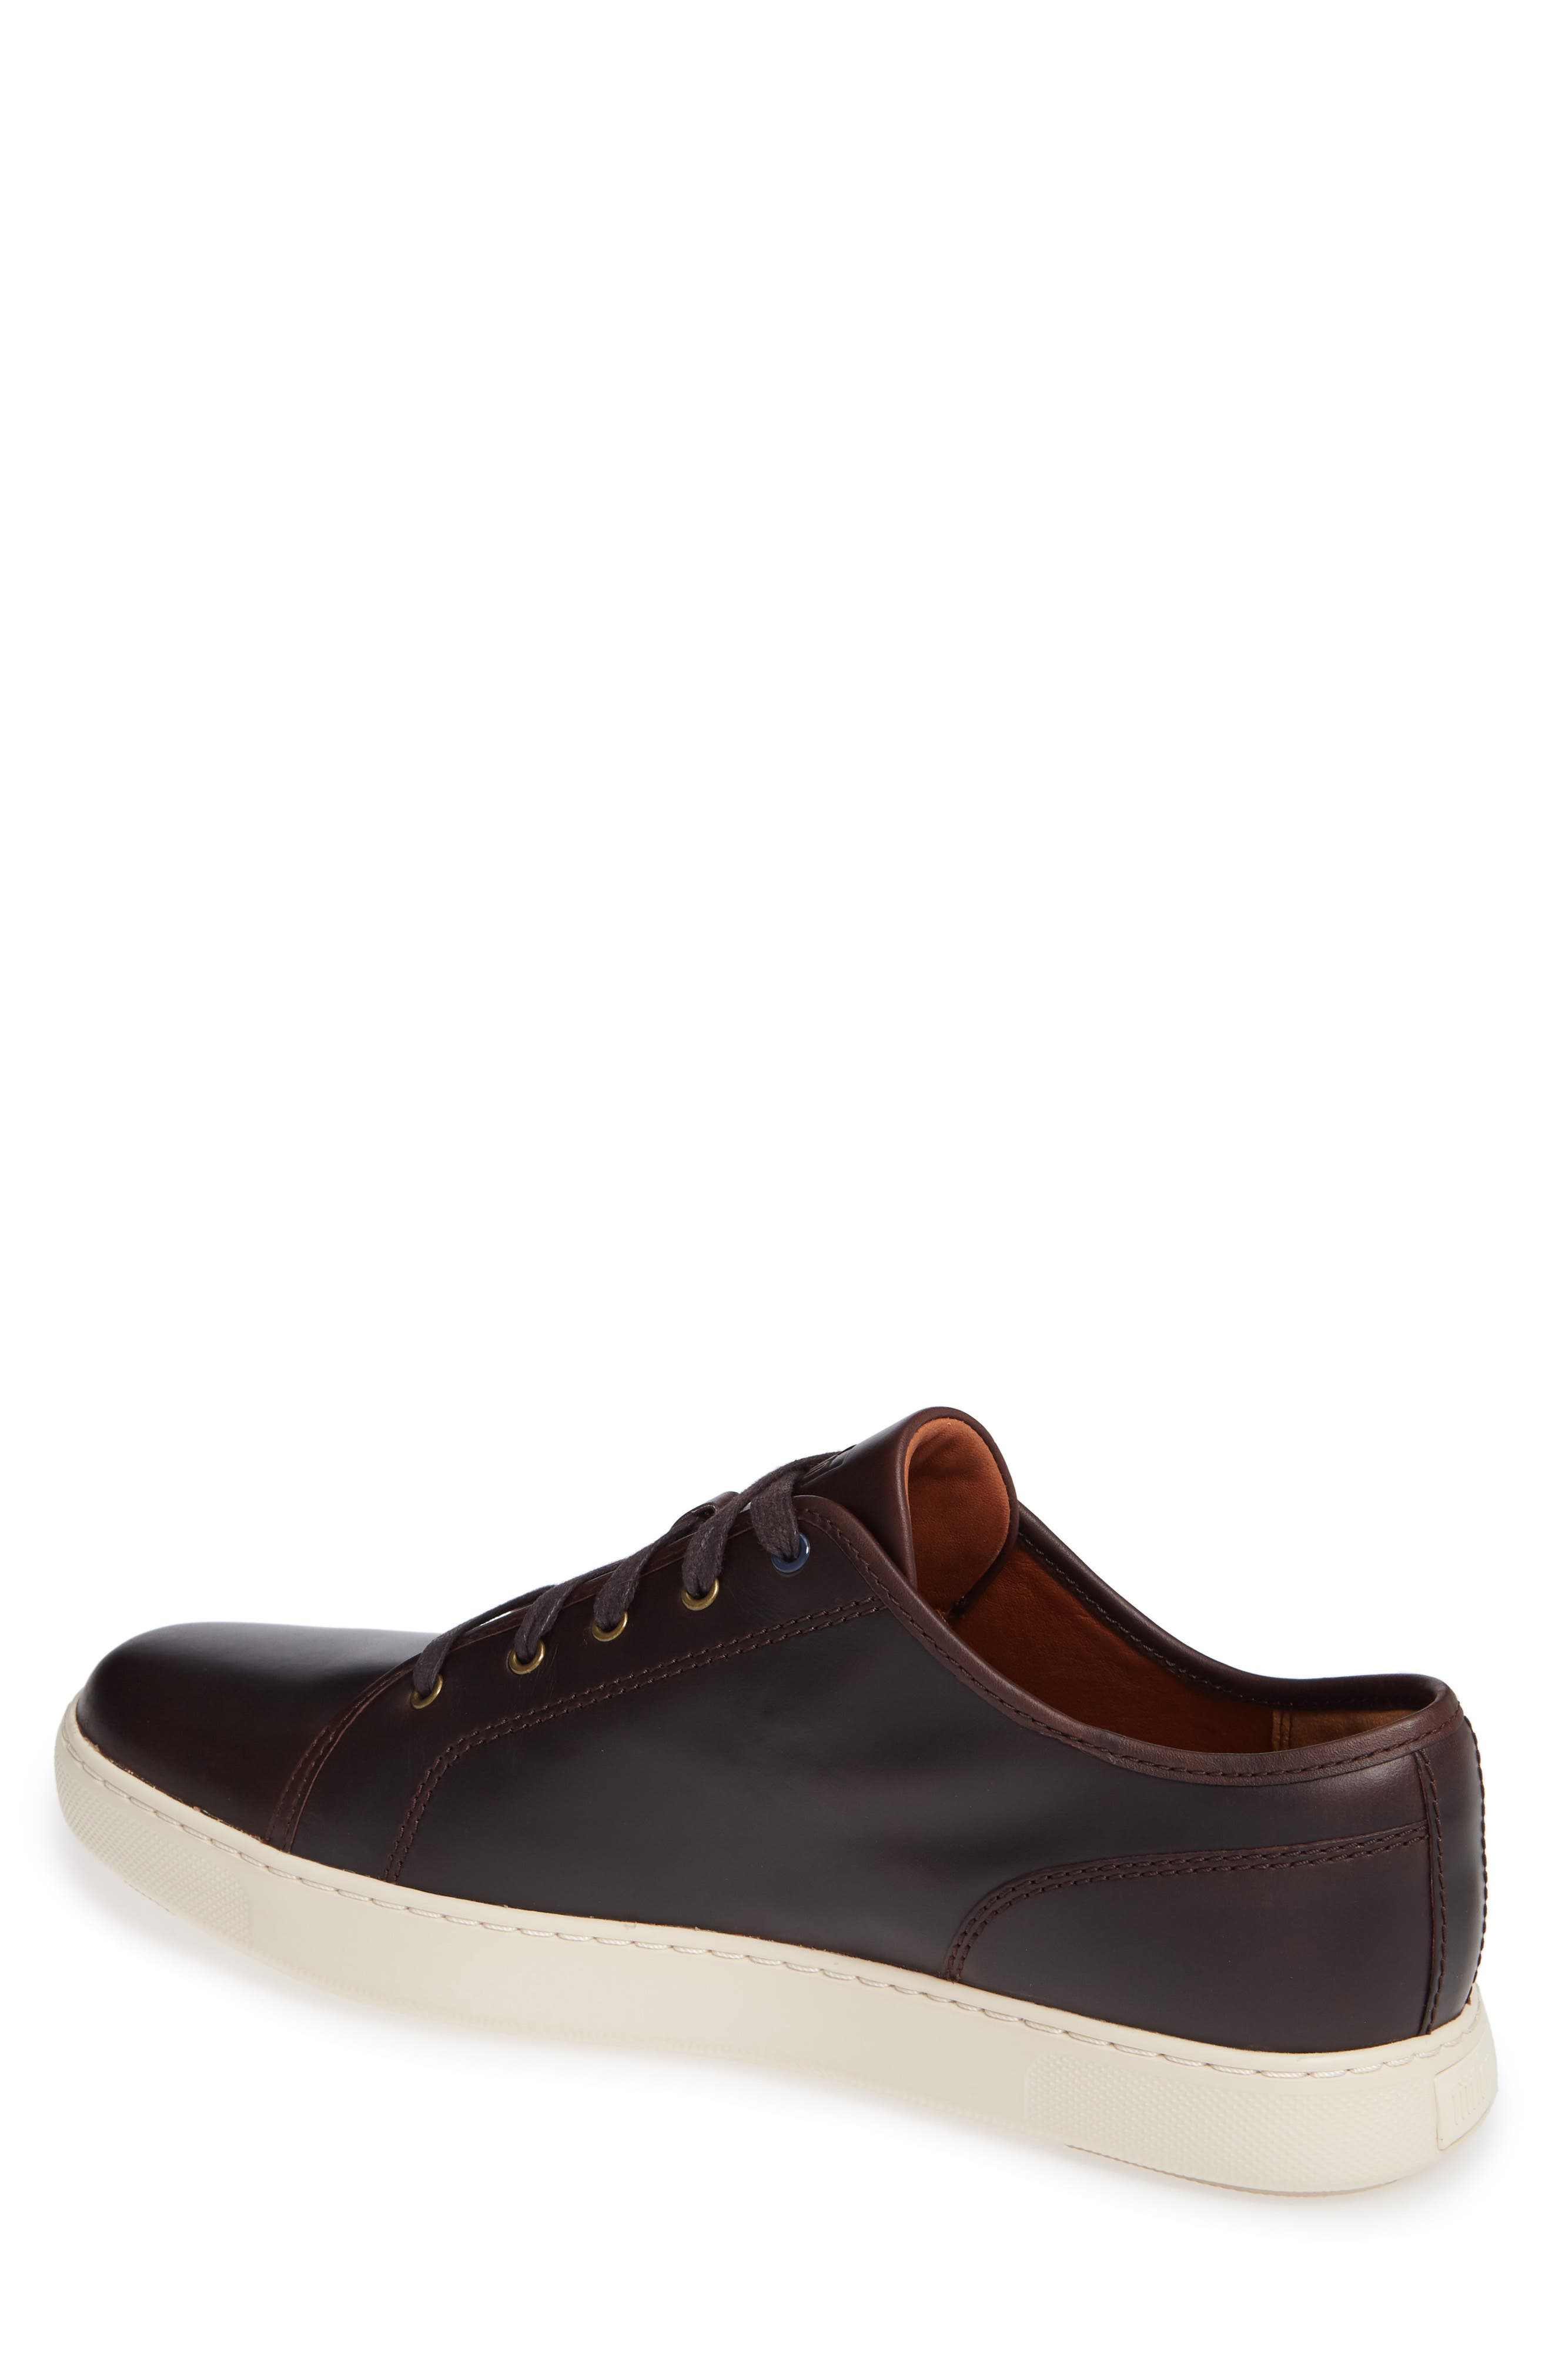 Christophe Low Top Sneaker,                             Alternate thumbnail 2, color,                             Dark Oxblood